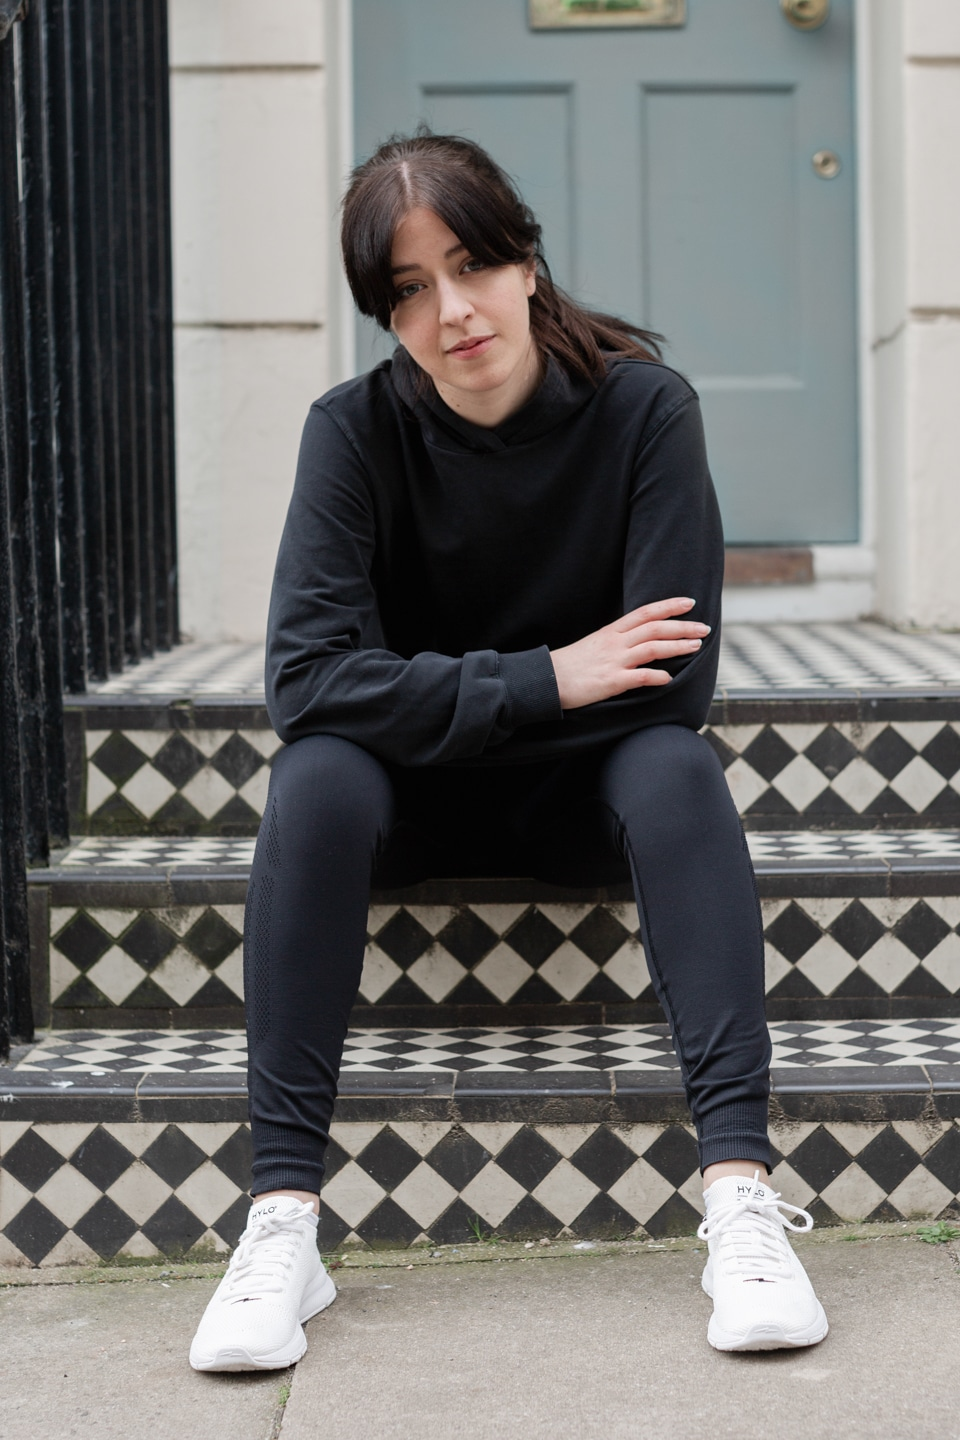 Besma wears black track suit and Hylo sustainable sneakers